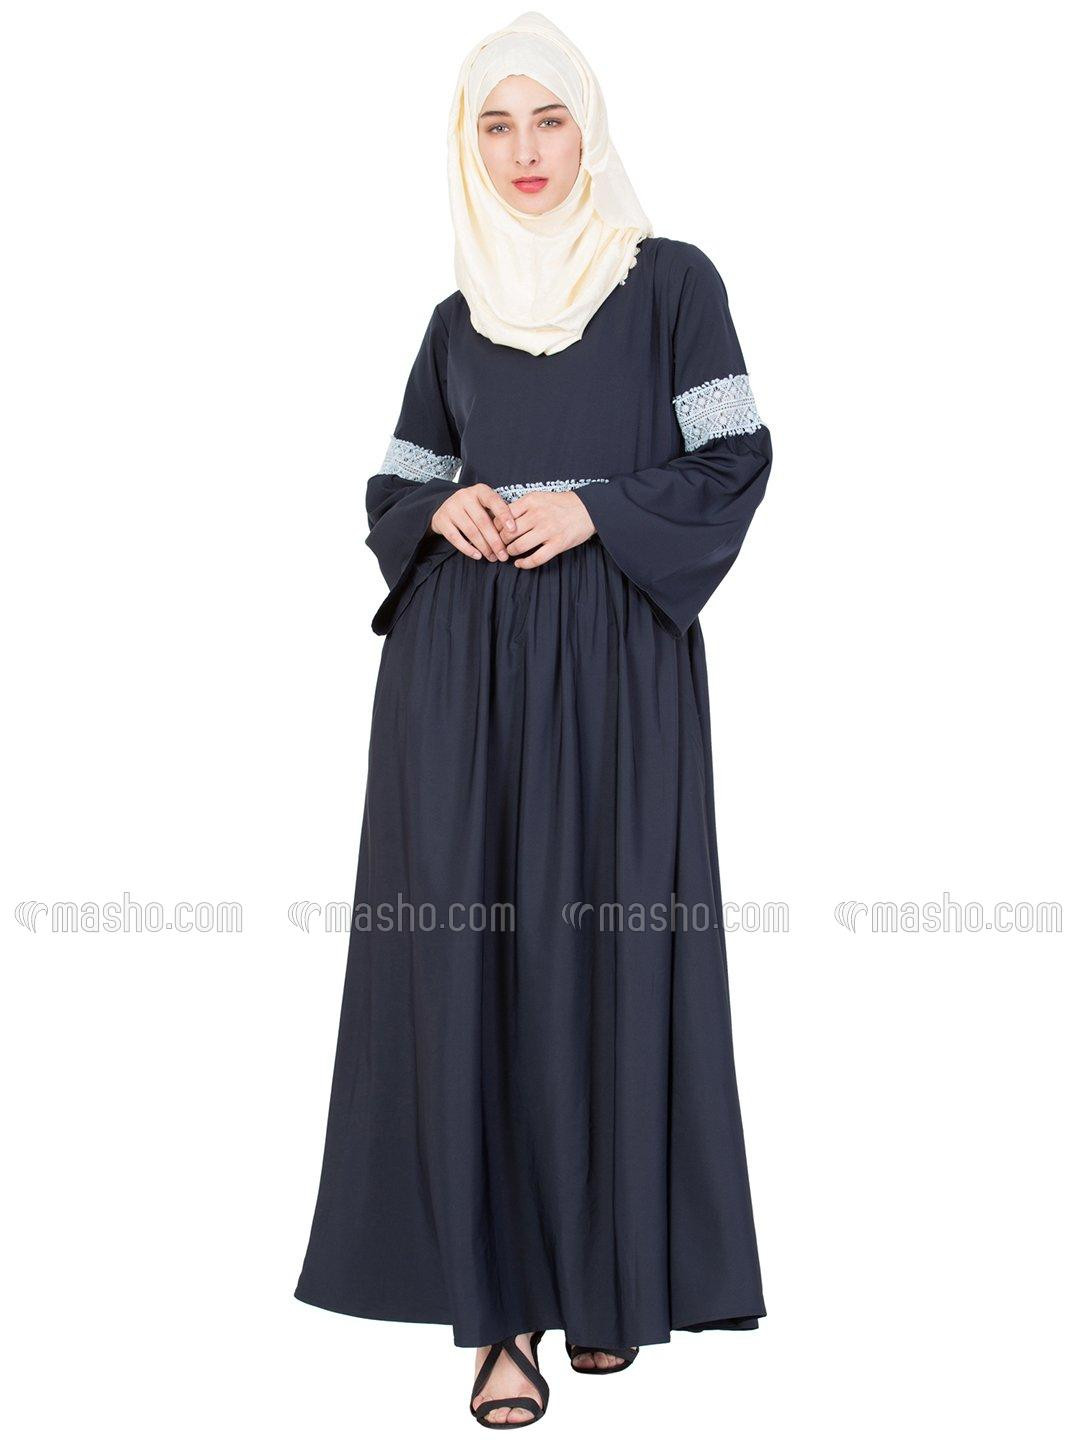 100% Polyester Crepe Lace At Waist and Sleeve Abaya in Navy Blue